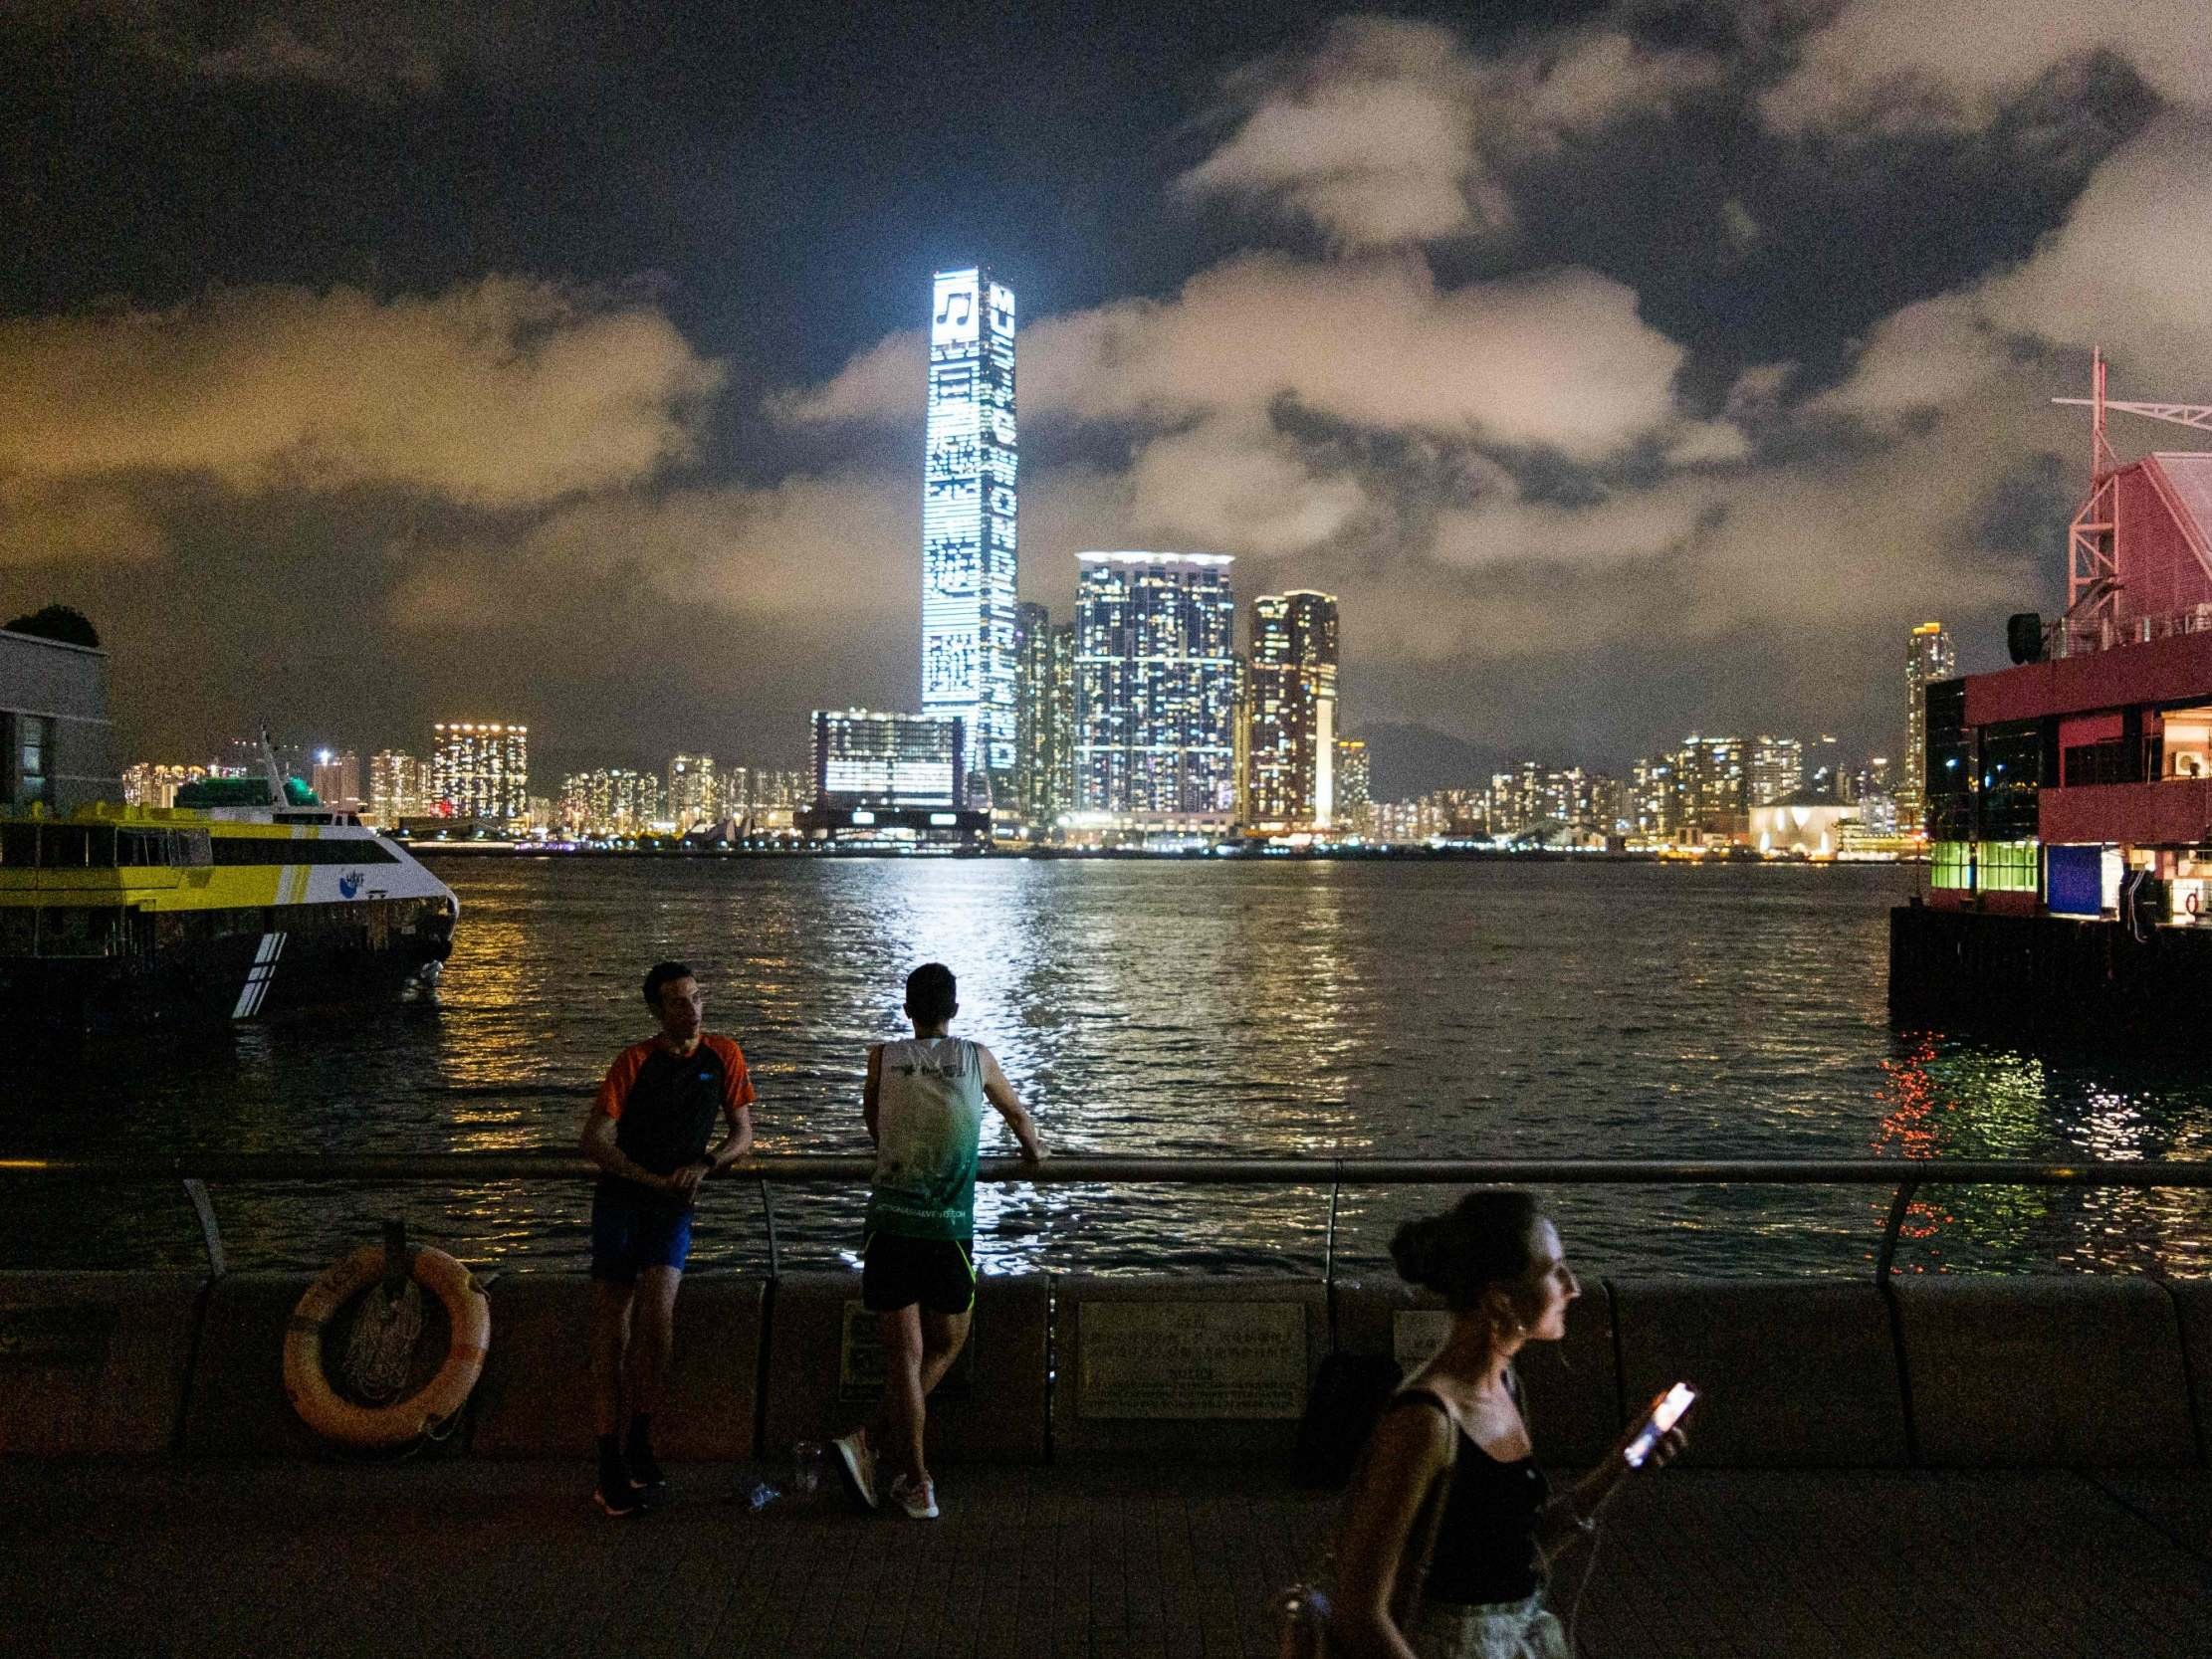 How economically important is Hong Kong to mainland China today?